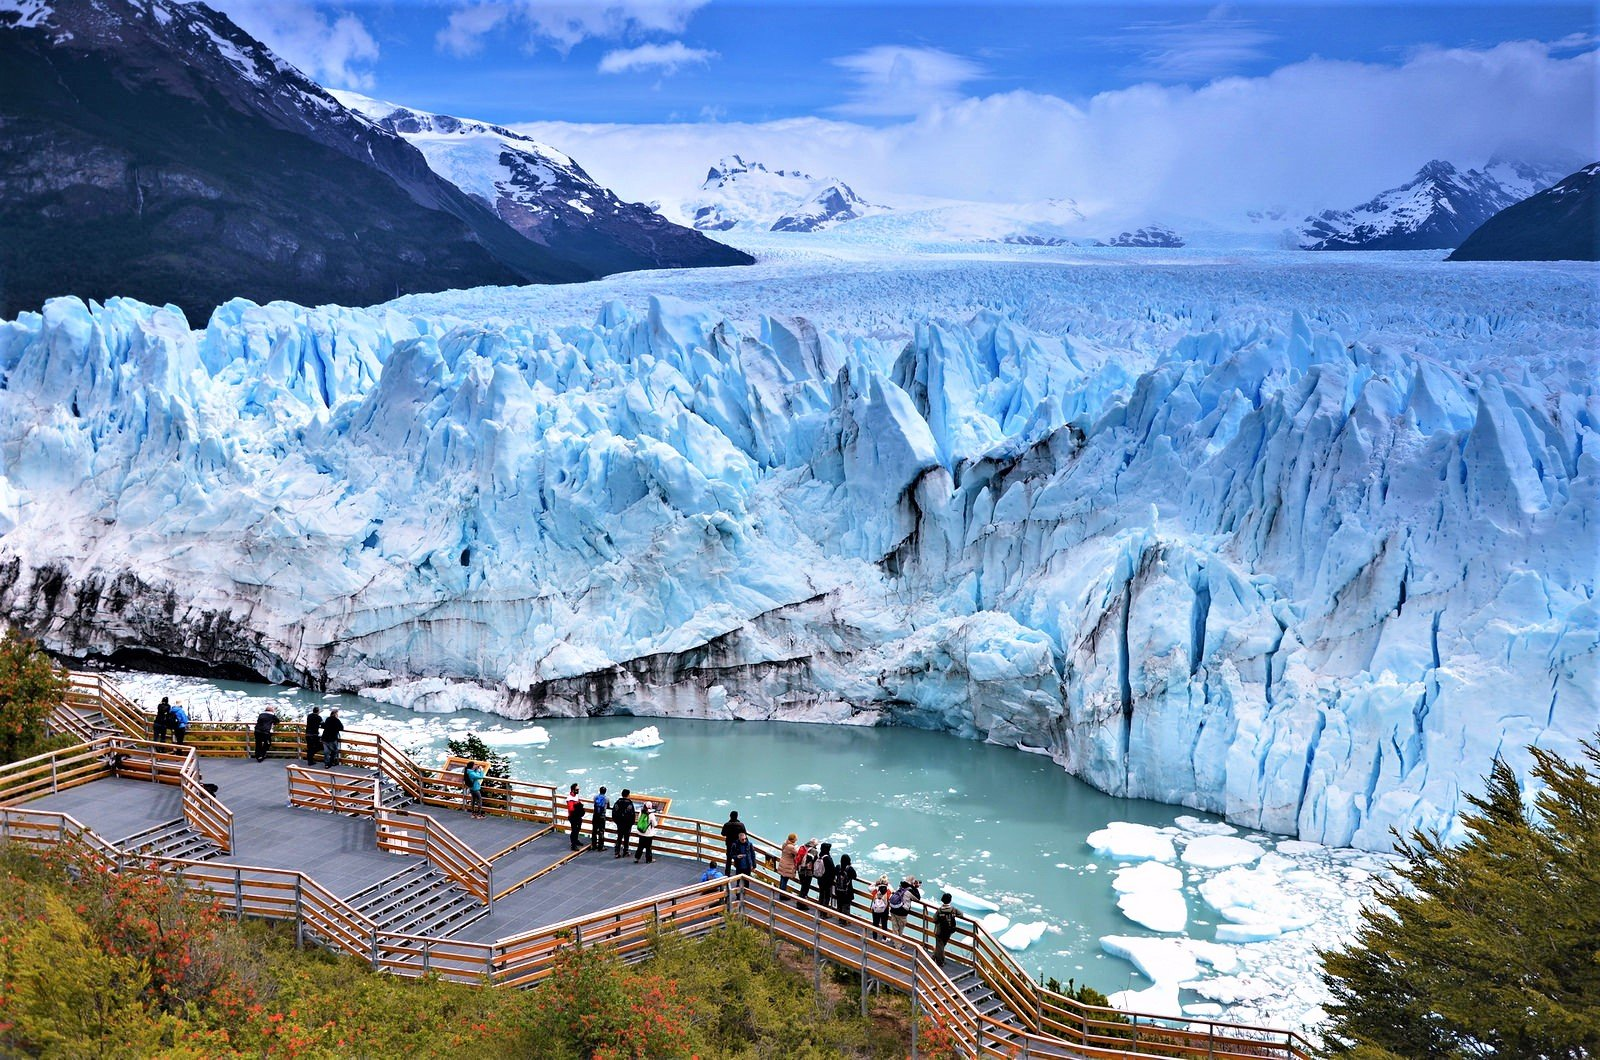 How To See The Glacier Fall In El Calafate